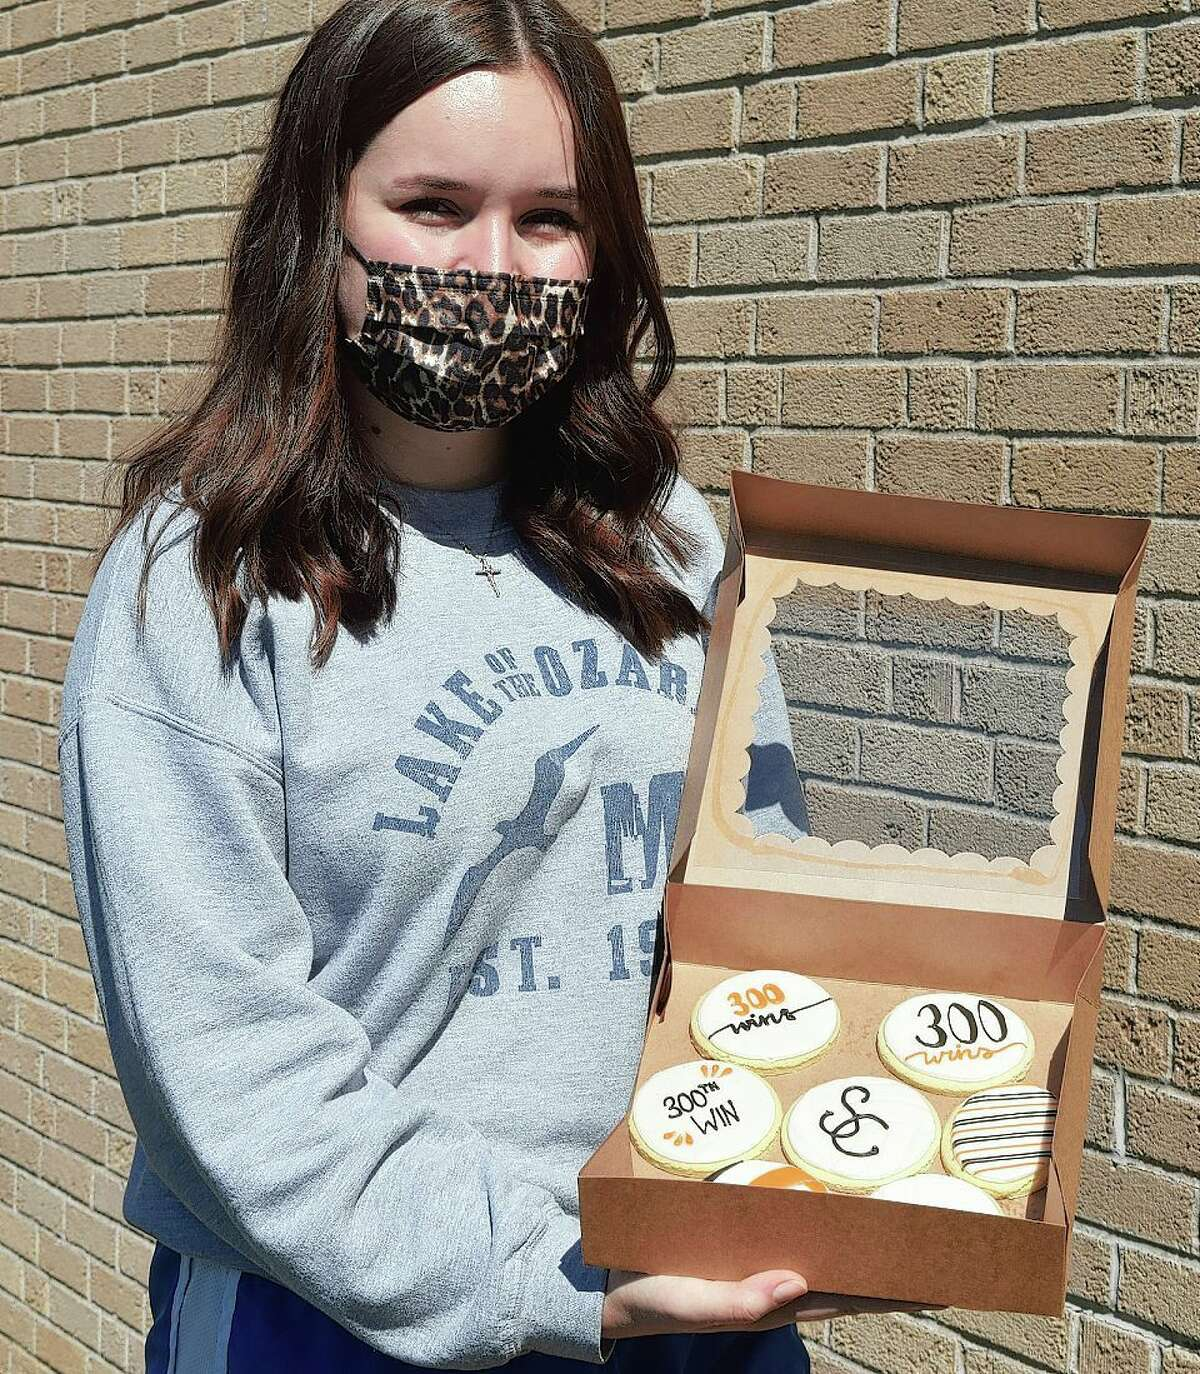 Madi Springer, 15, of Franklin started her own small business - Madi's Cookies and Cupcakes - as a result of her love of baking.